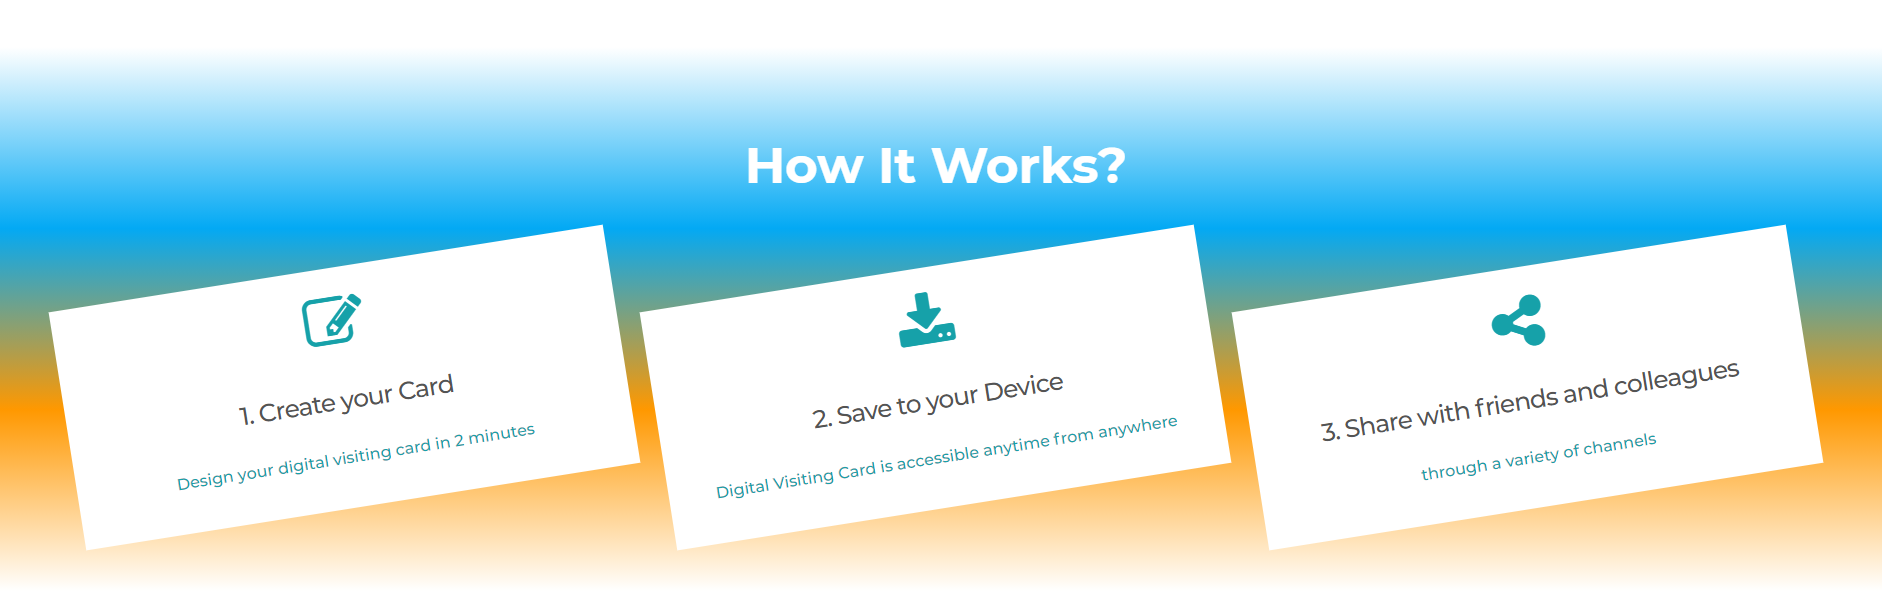 Digital visiting cards -How it Works